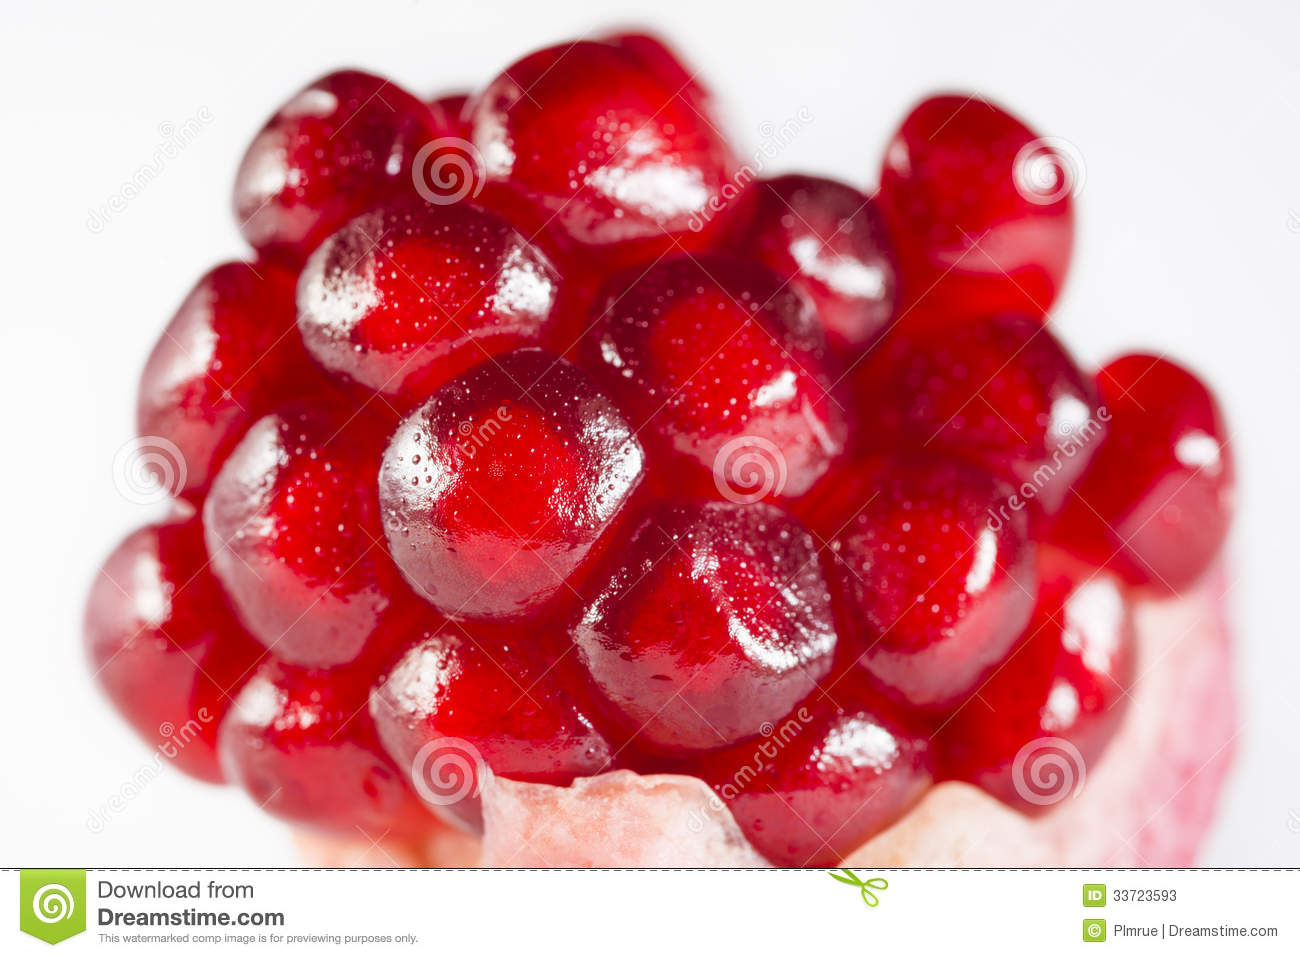 Pomegranate Seeds Stock Photos - Image: 33723593